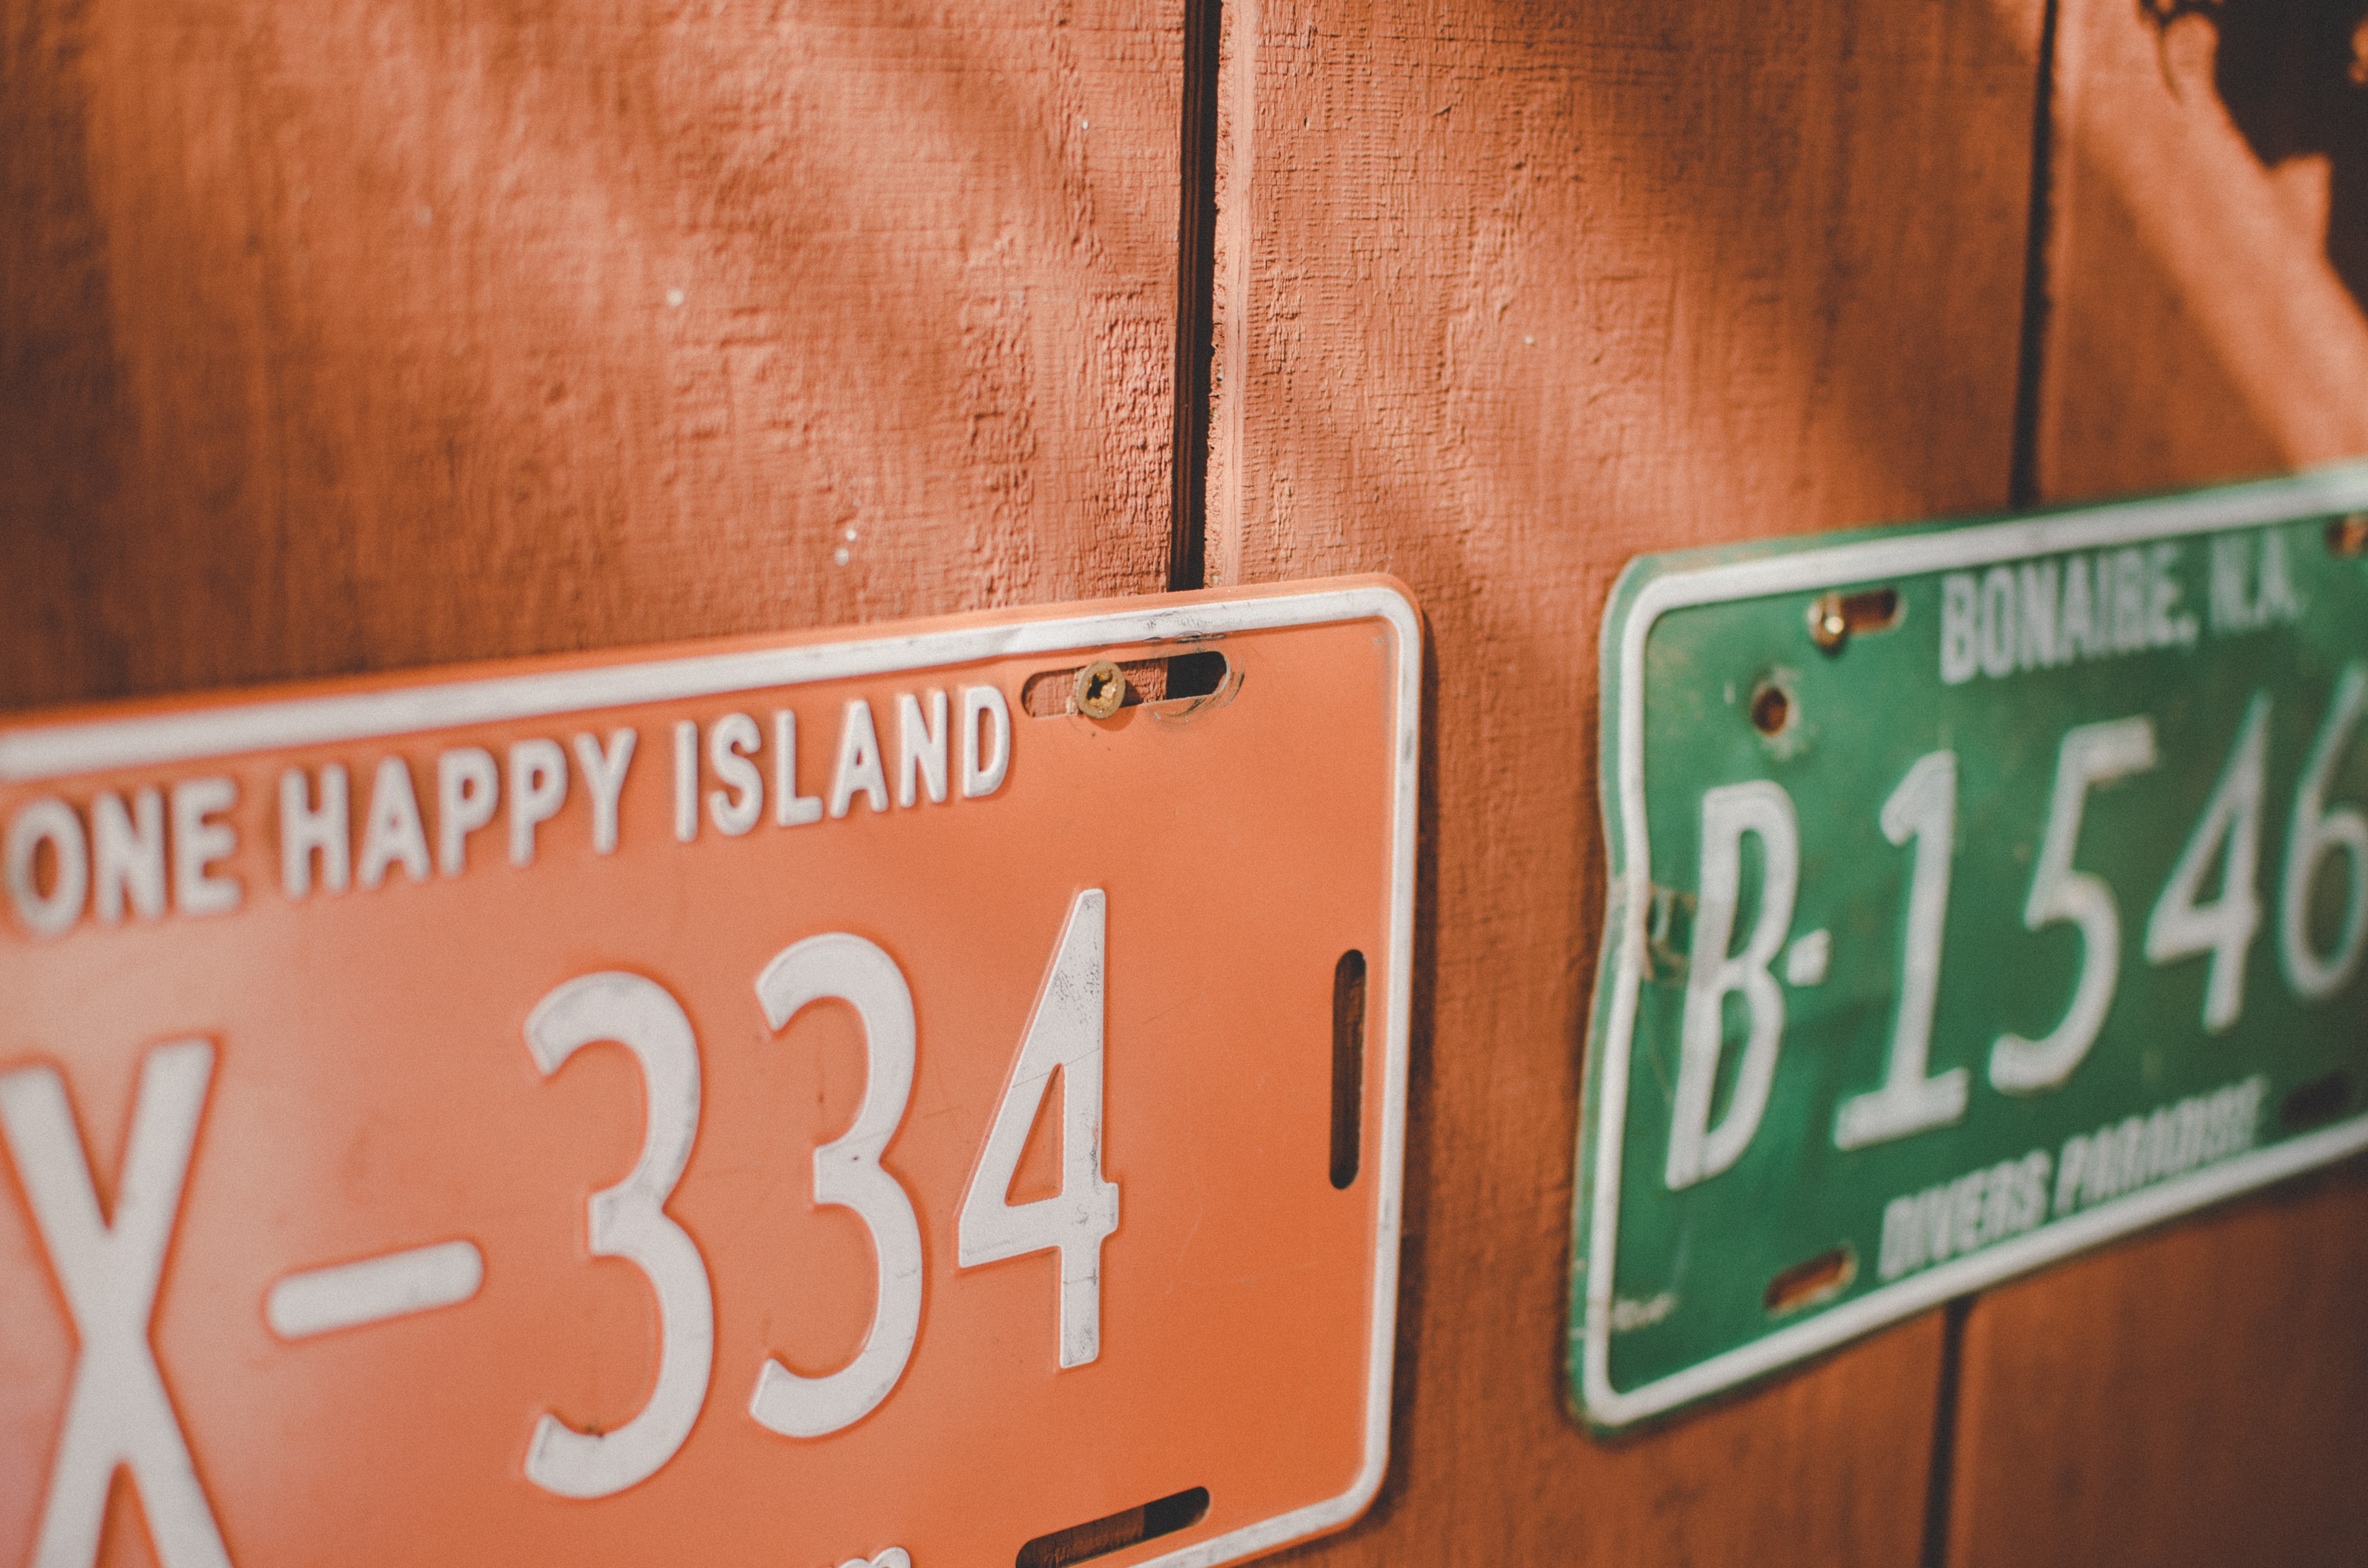 License plates on the orange wall in Carribean Netherlands.